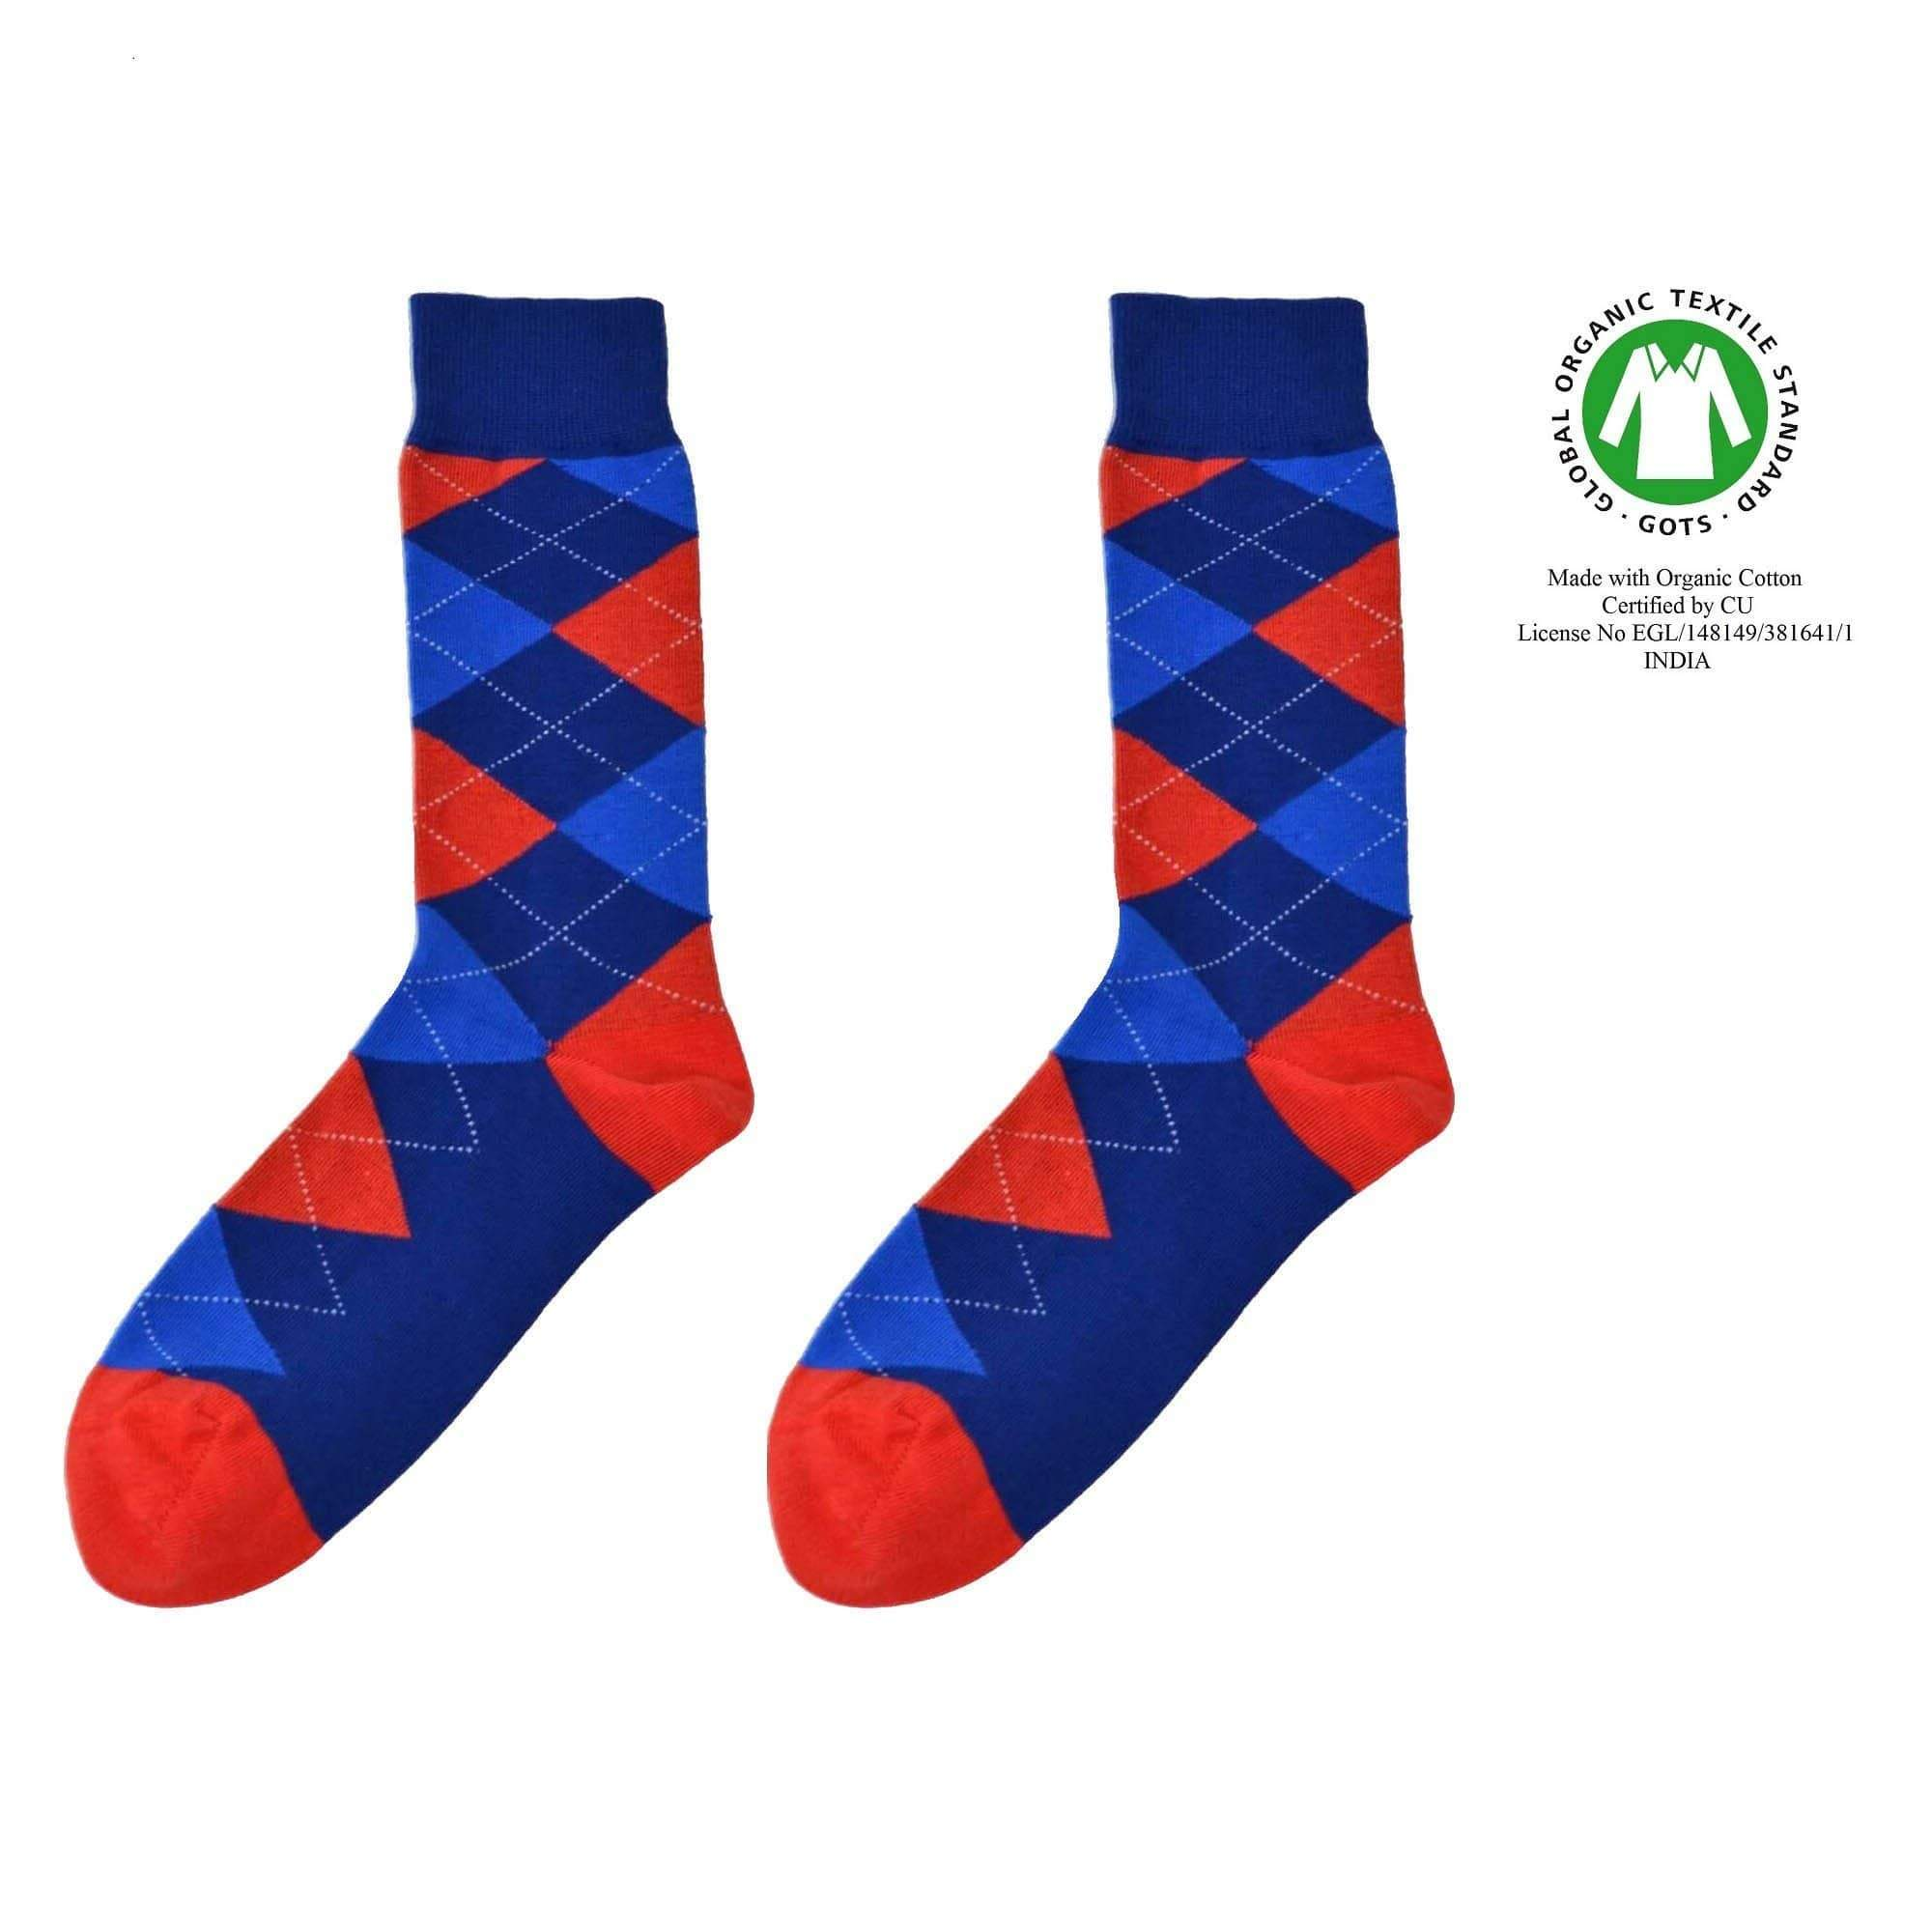 Organic Socks of Sweden sock Ekström Socks. Organic Cotton. sustainable fashion ethical fashion